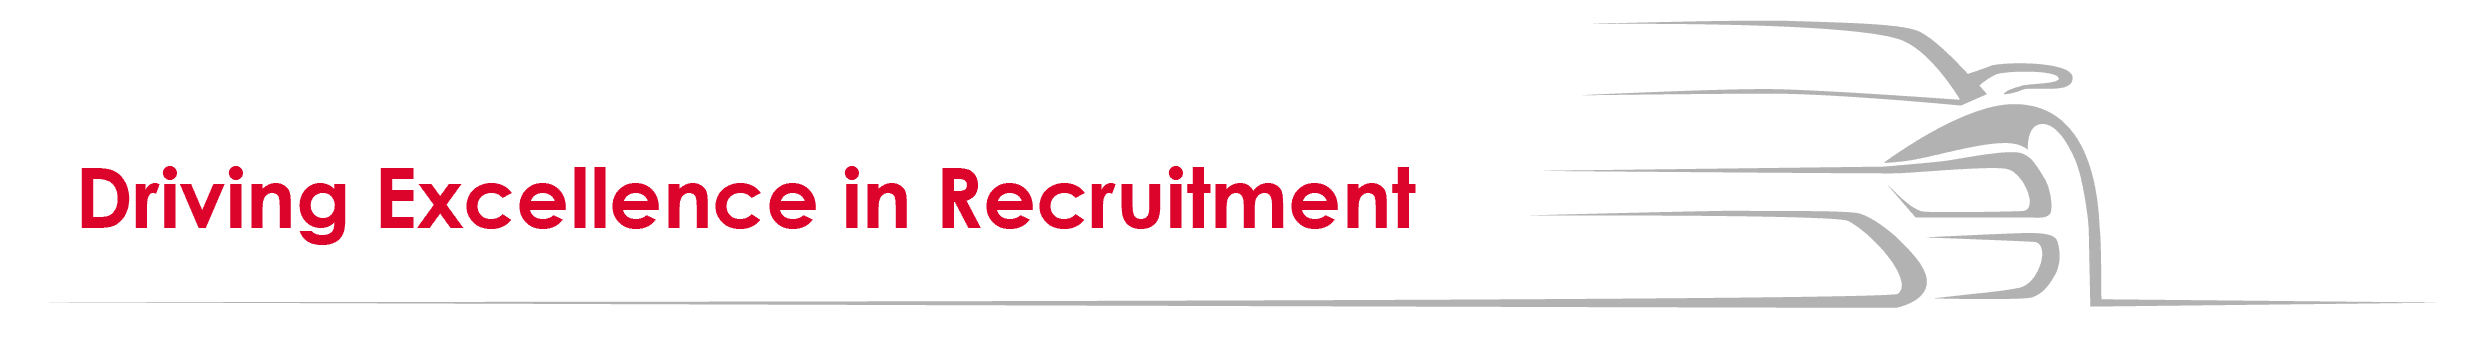 driving excellence in recruitment